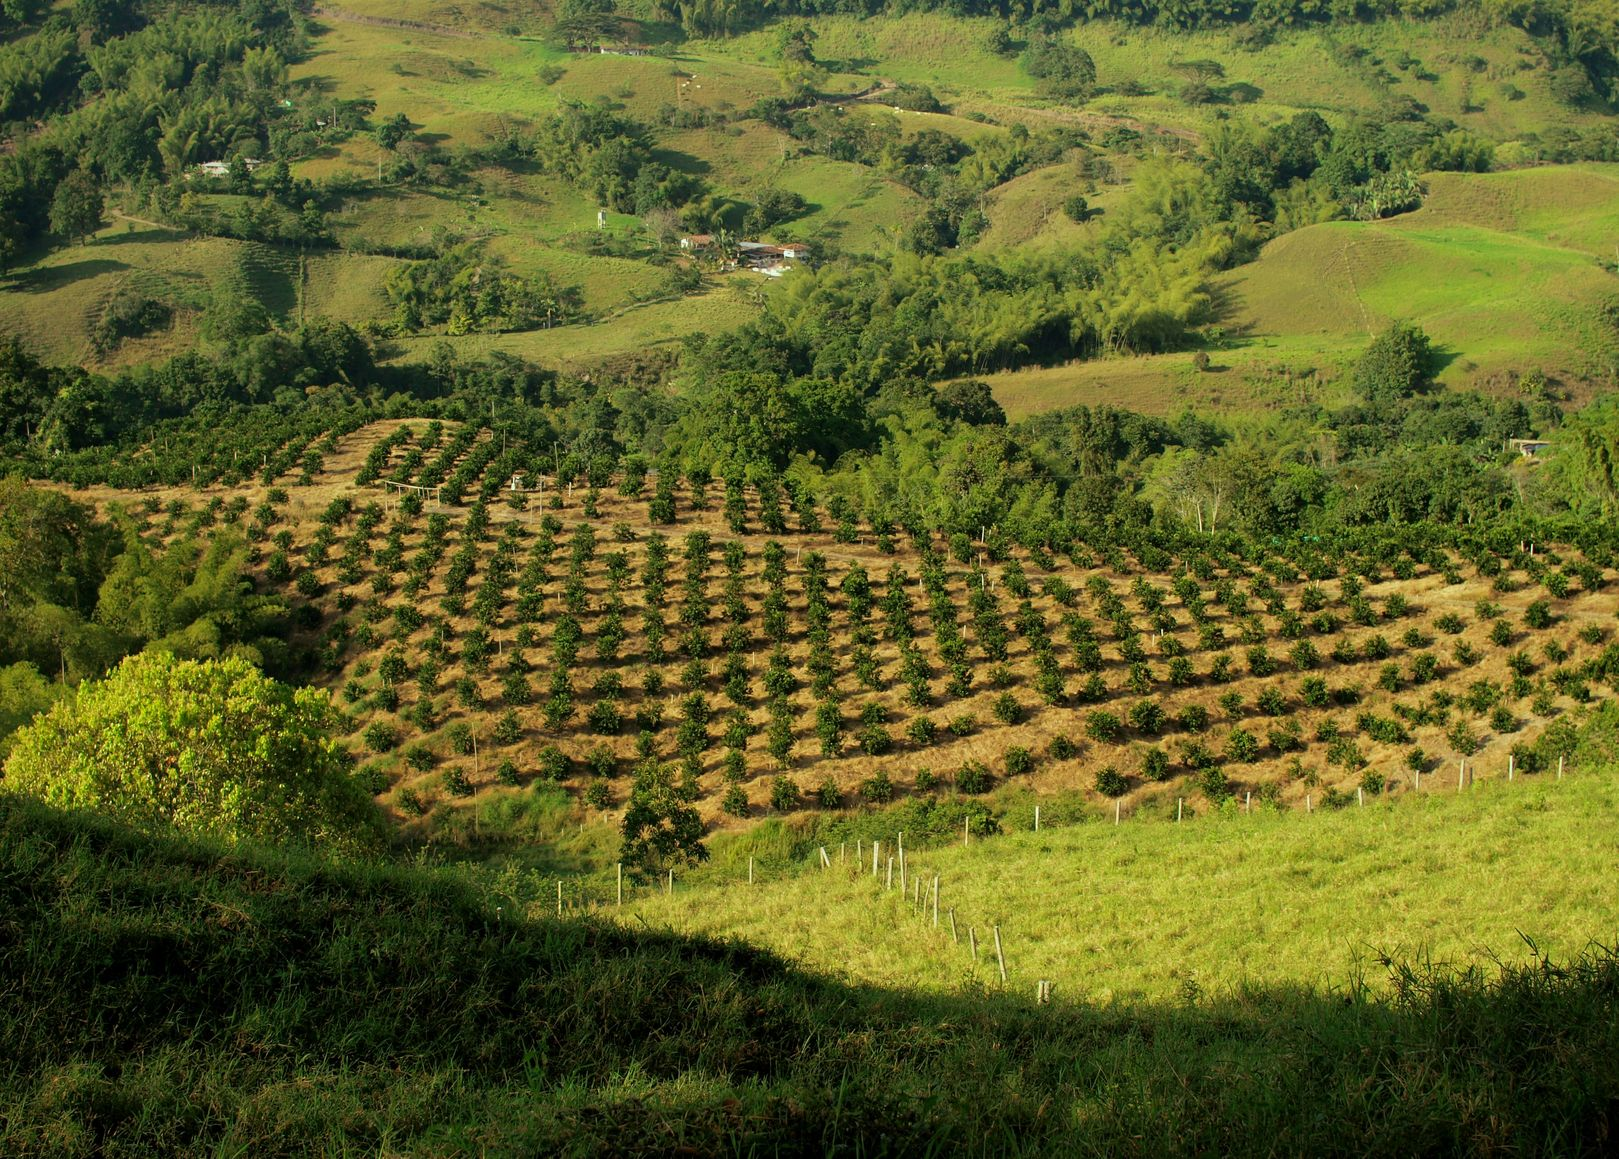 Coffee plantation landscape Сан-Кристобаль (Чатем)[1]